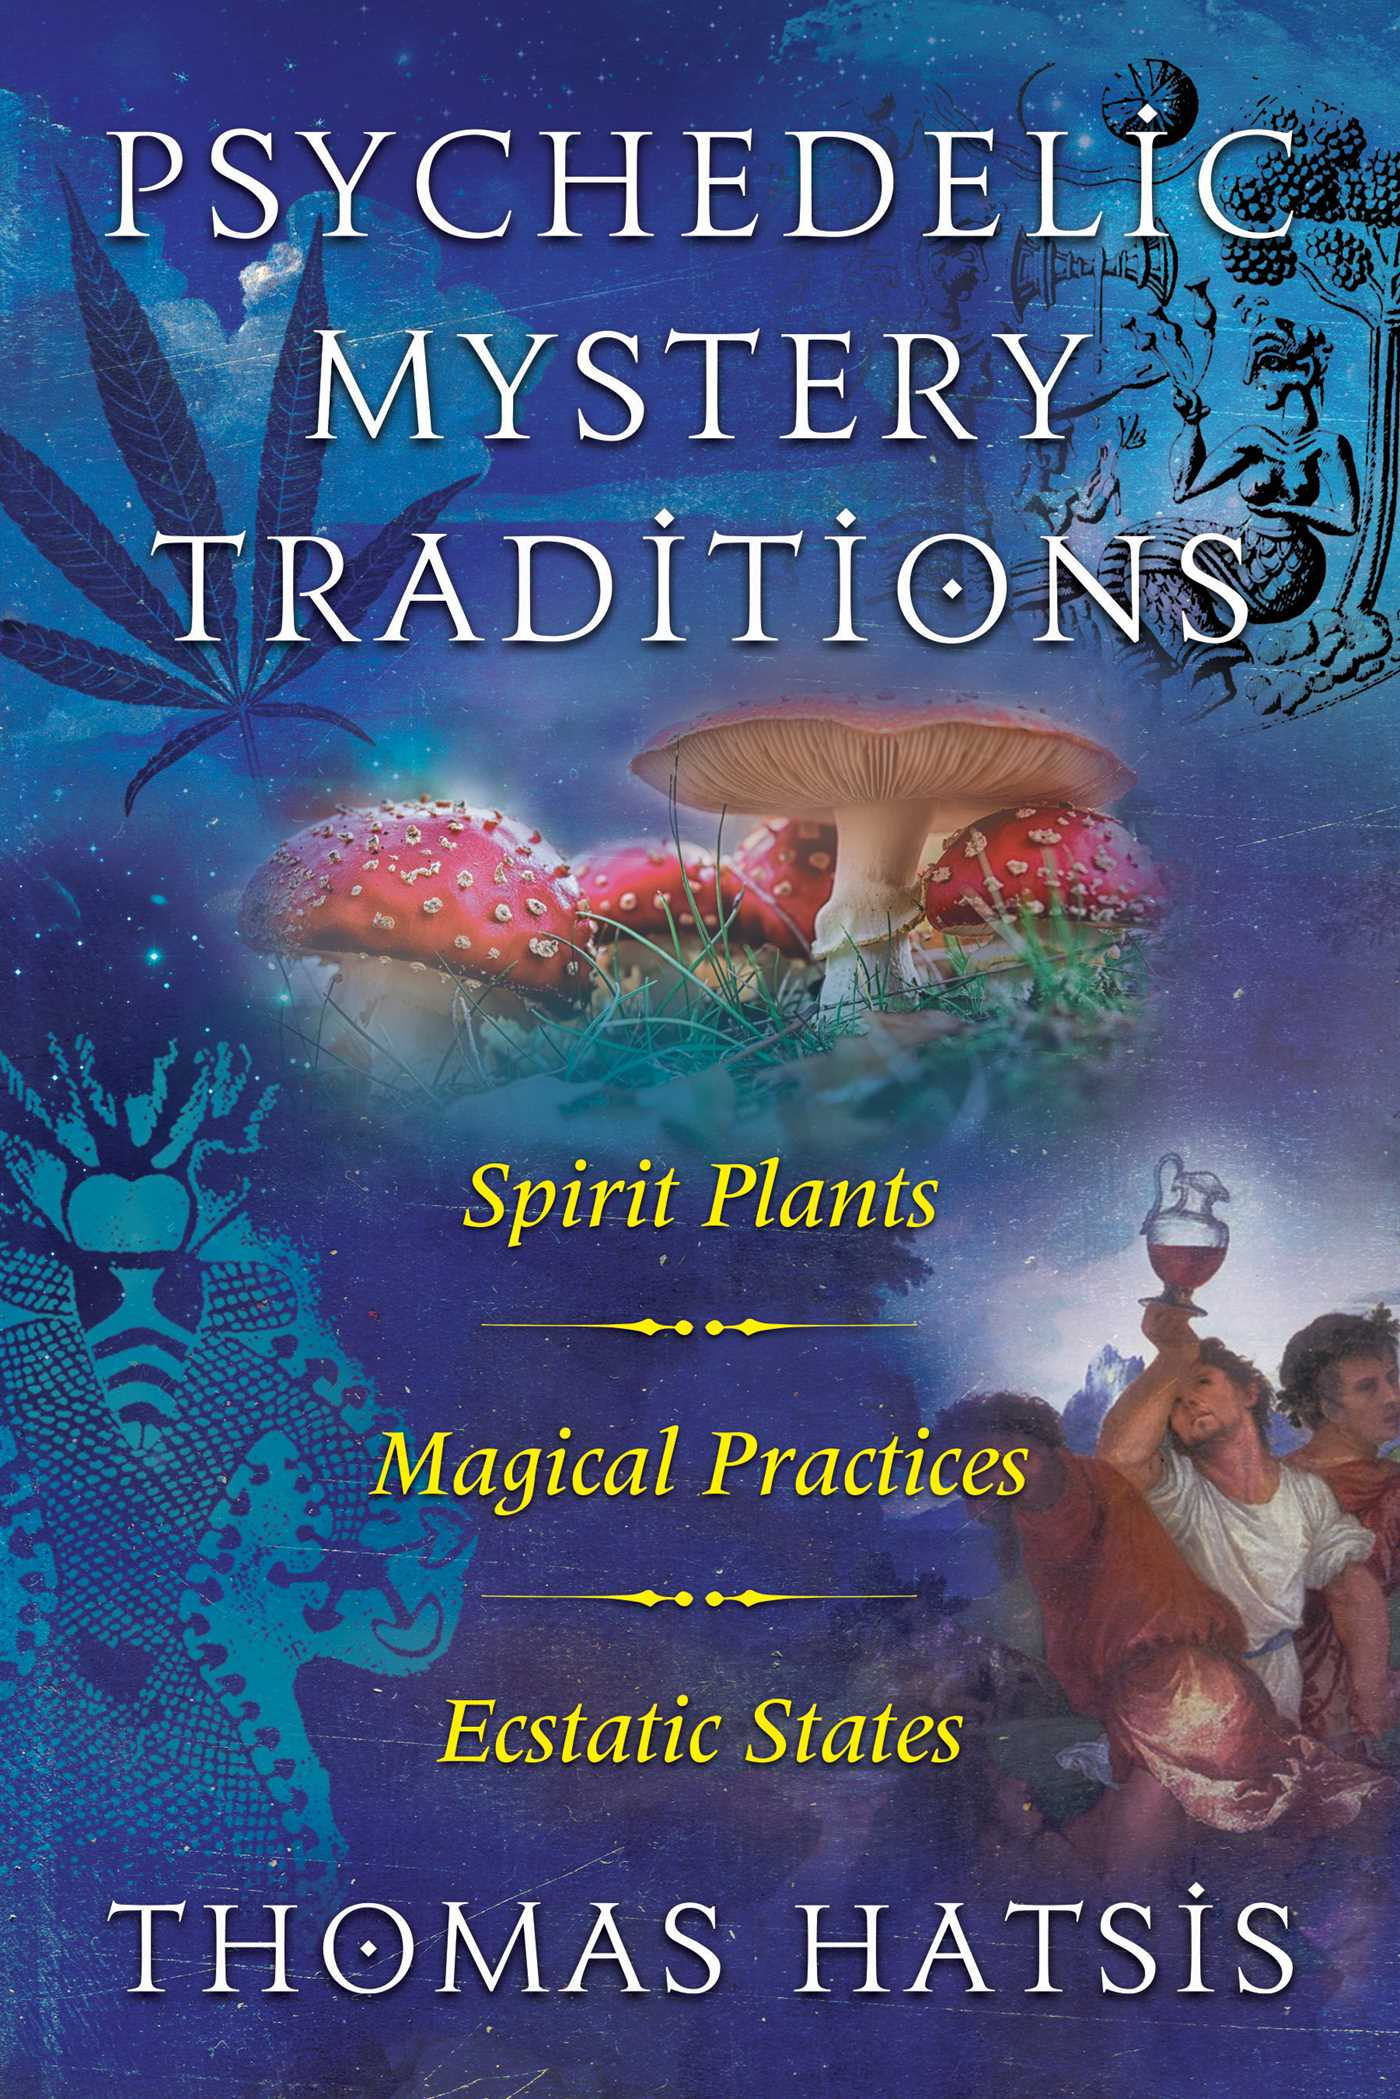 Psychedelic mystery traditions 9781620558003 hr